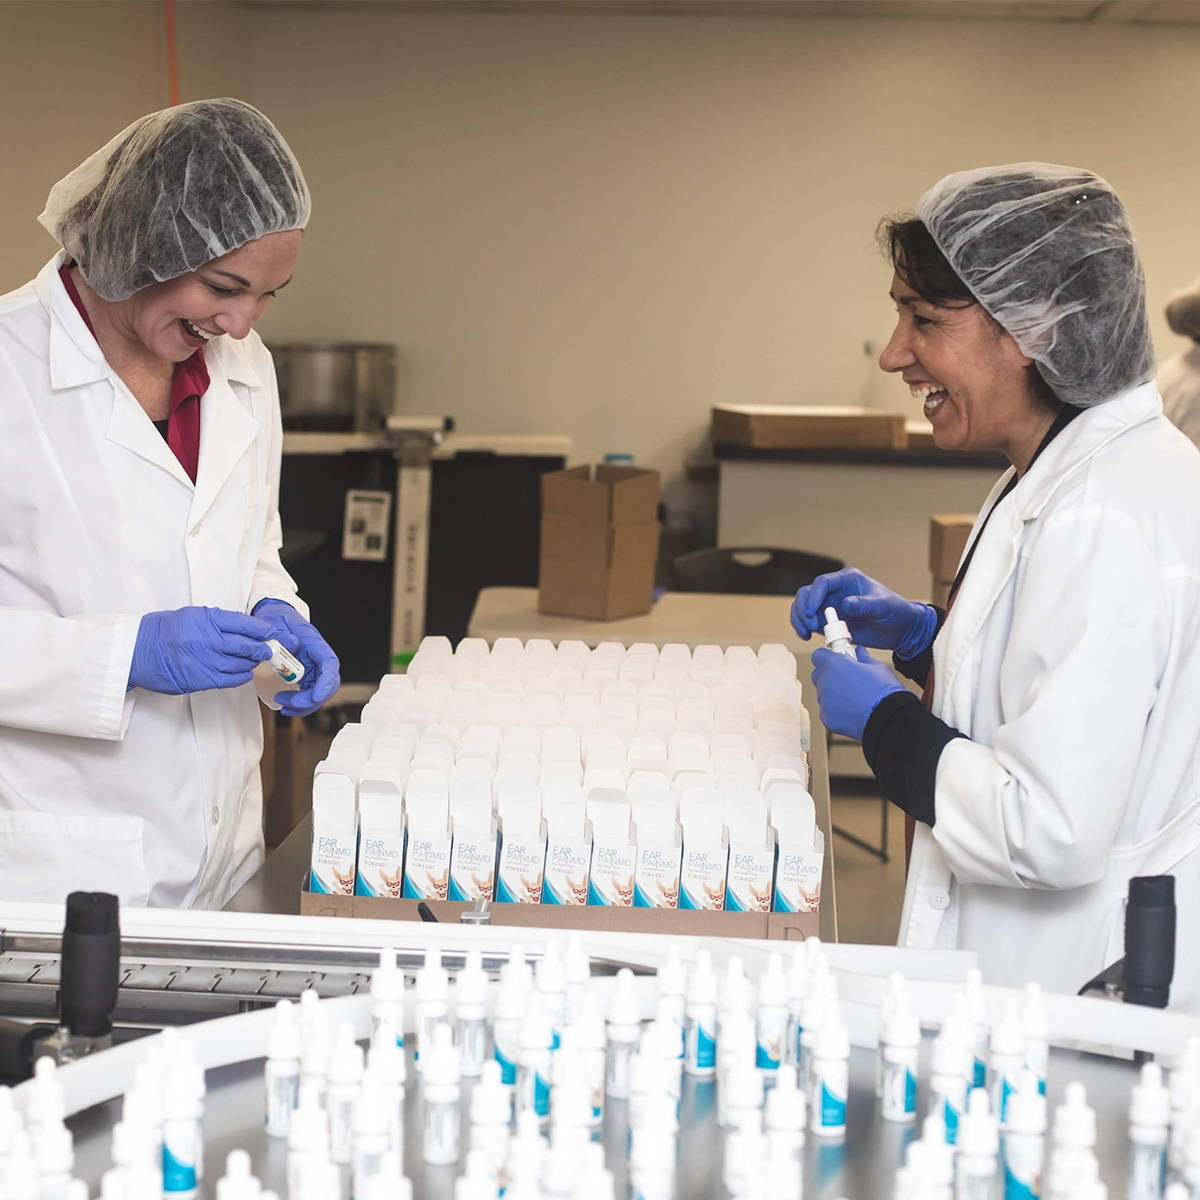 Eosera founder and Manufacturing team lead on manufacturing line filling boxes of EAR PAIN MD for Kids ear drop, ear ache and infection drop and smiling